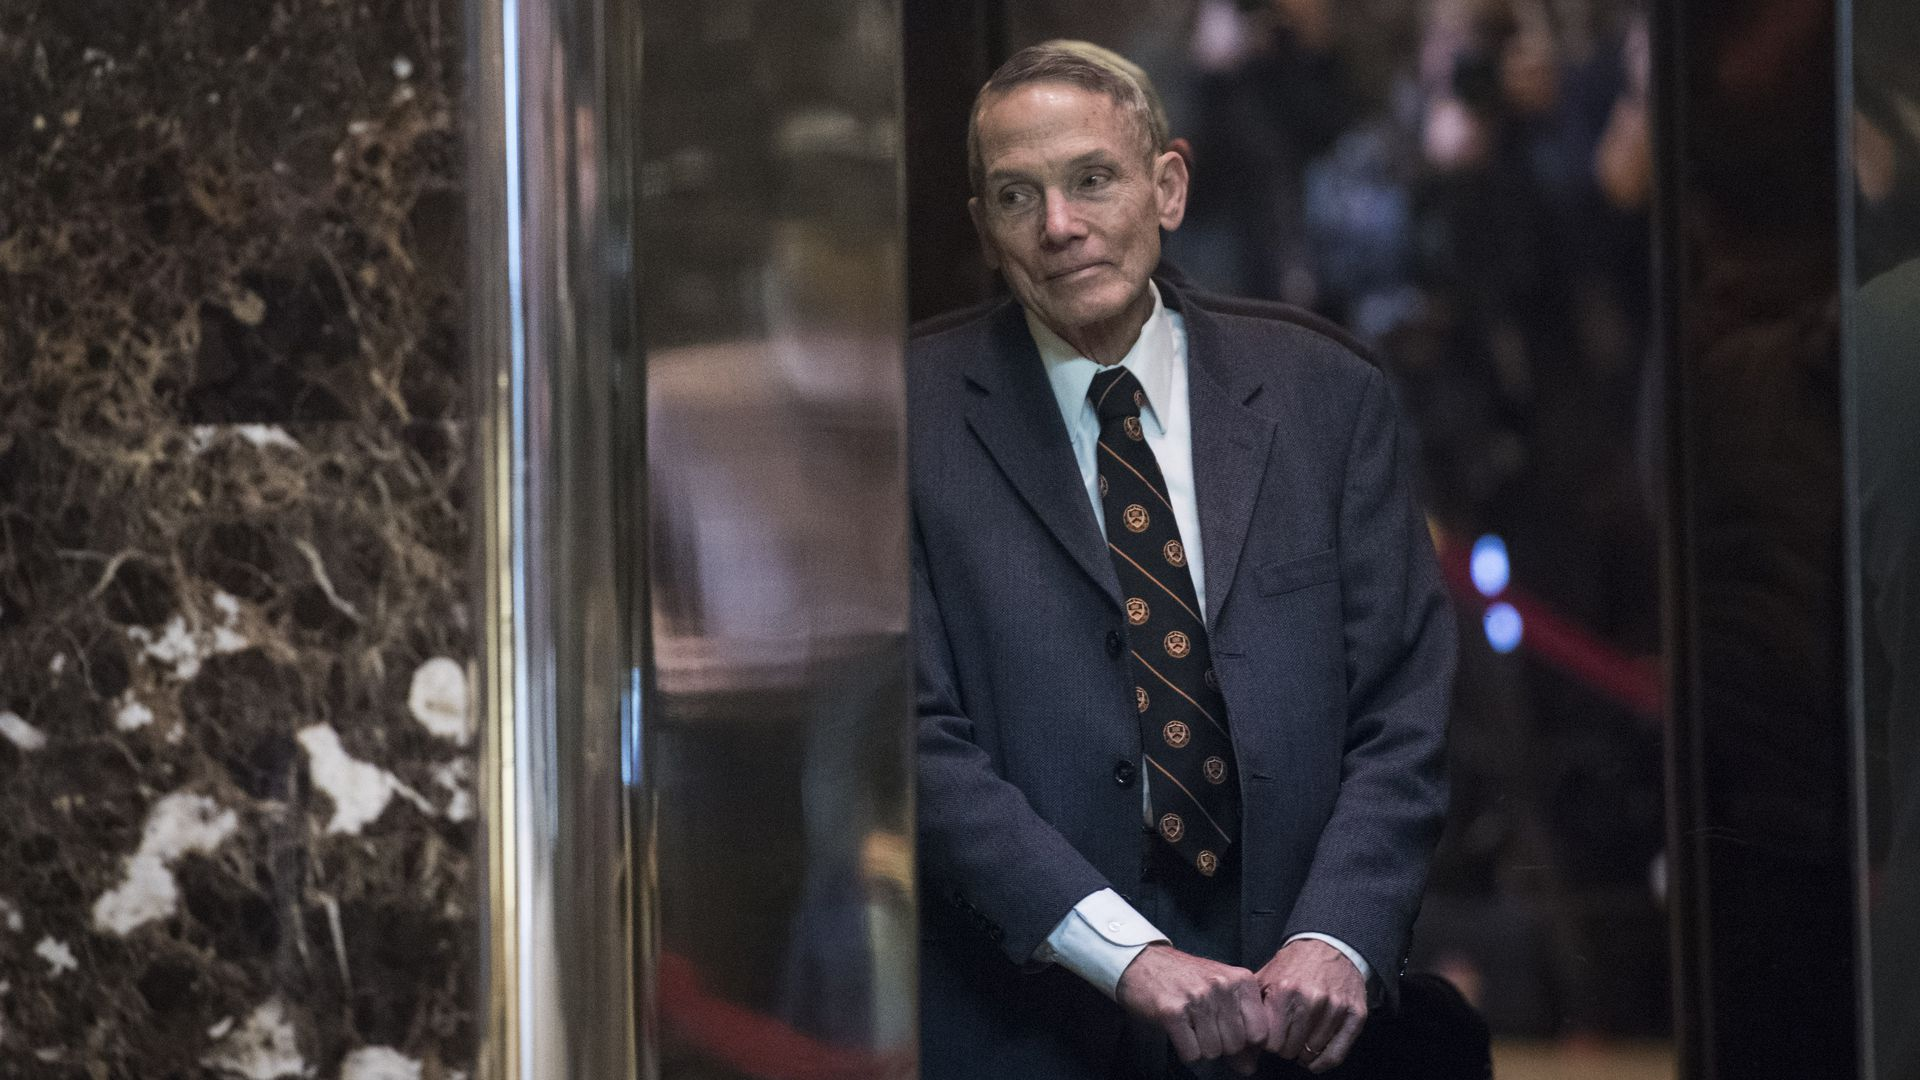 In this image, William Happer leans against a marble wall. He's wearing a gray suit and a black and orange striped tie.